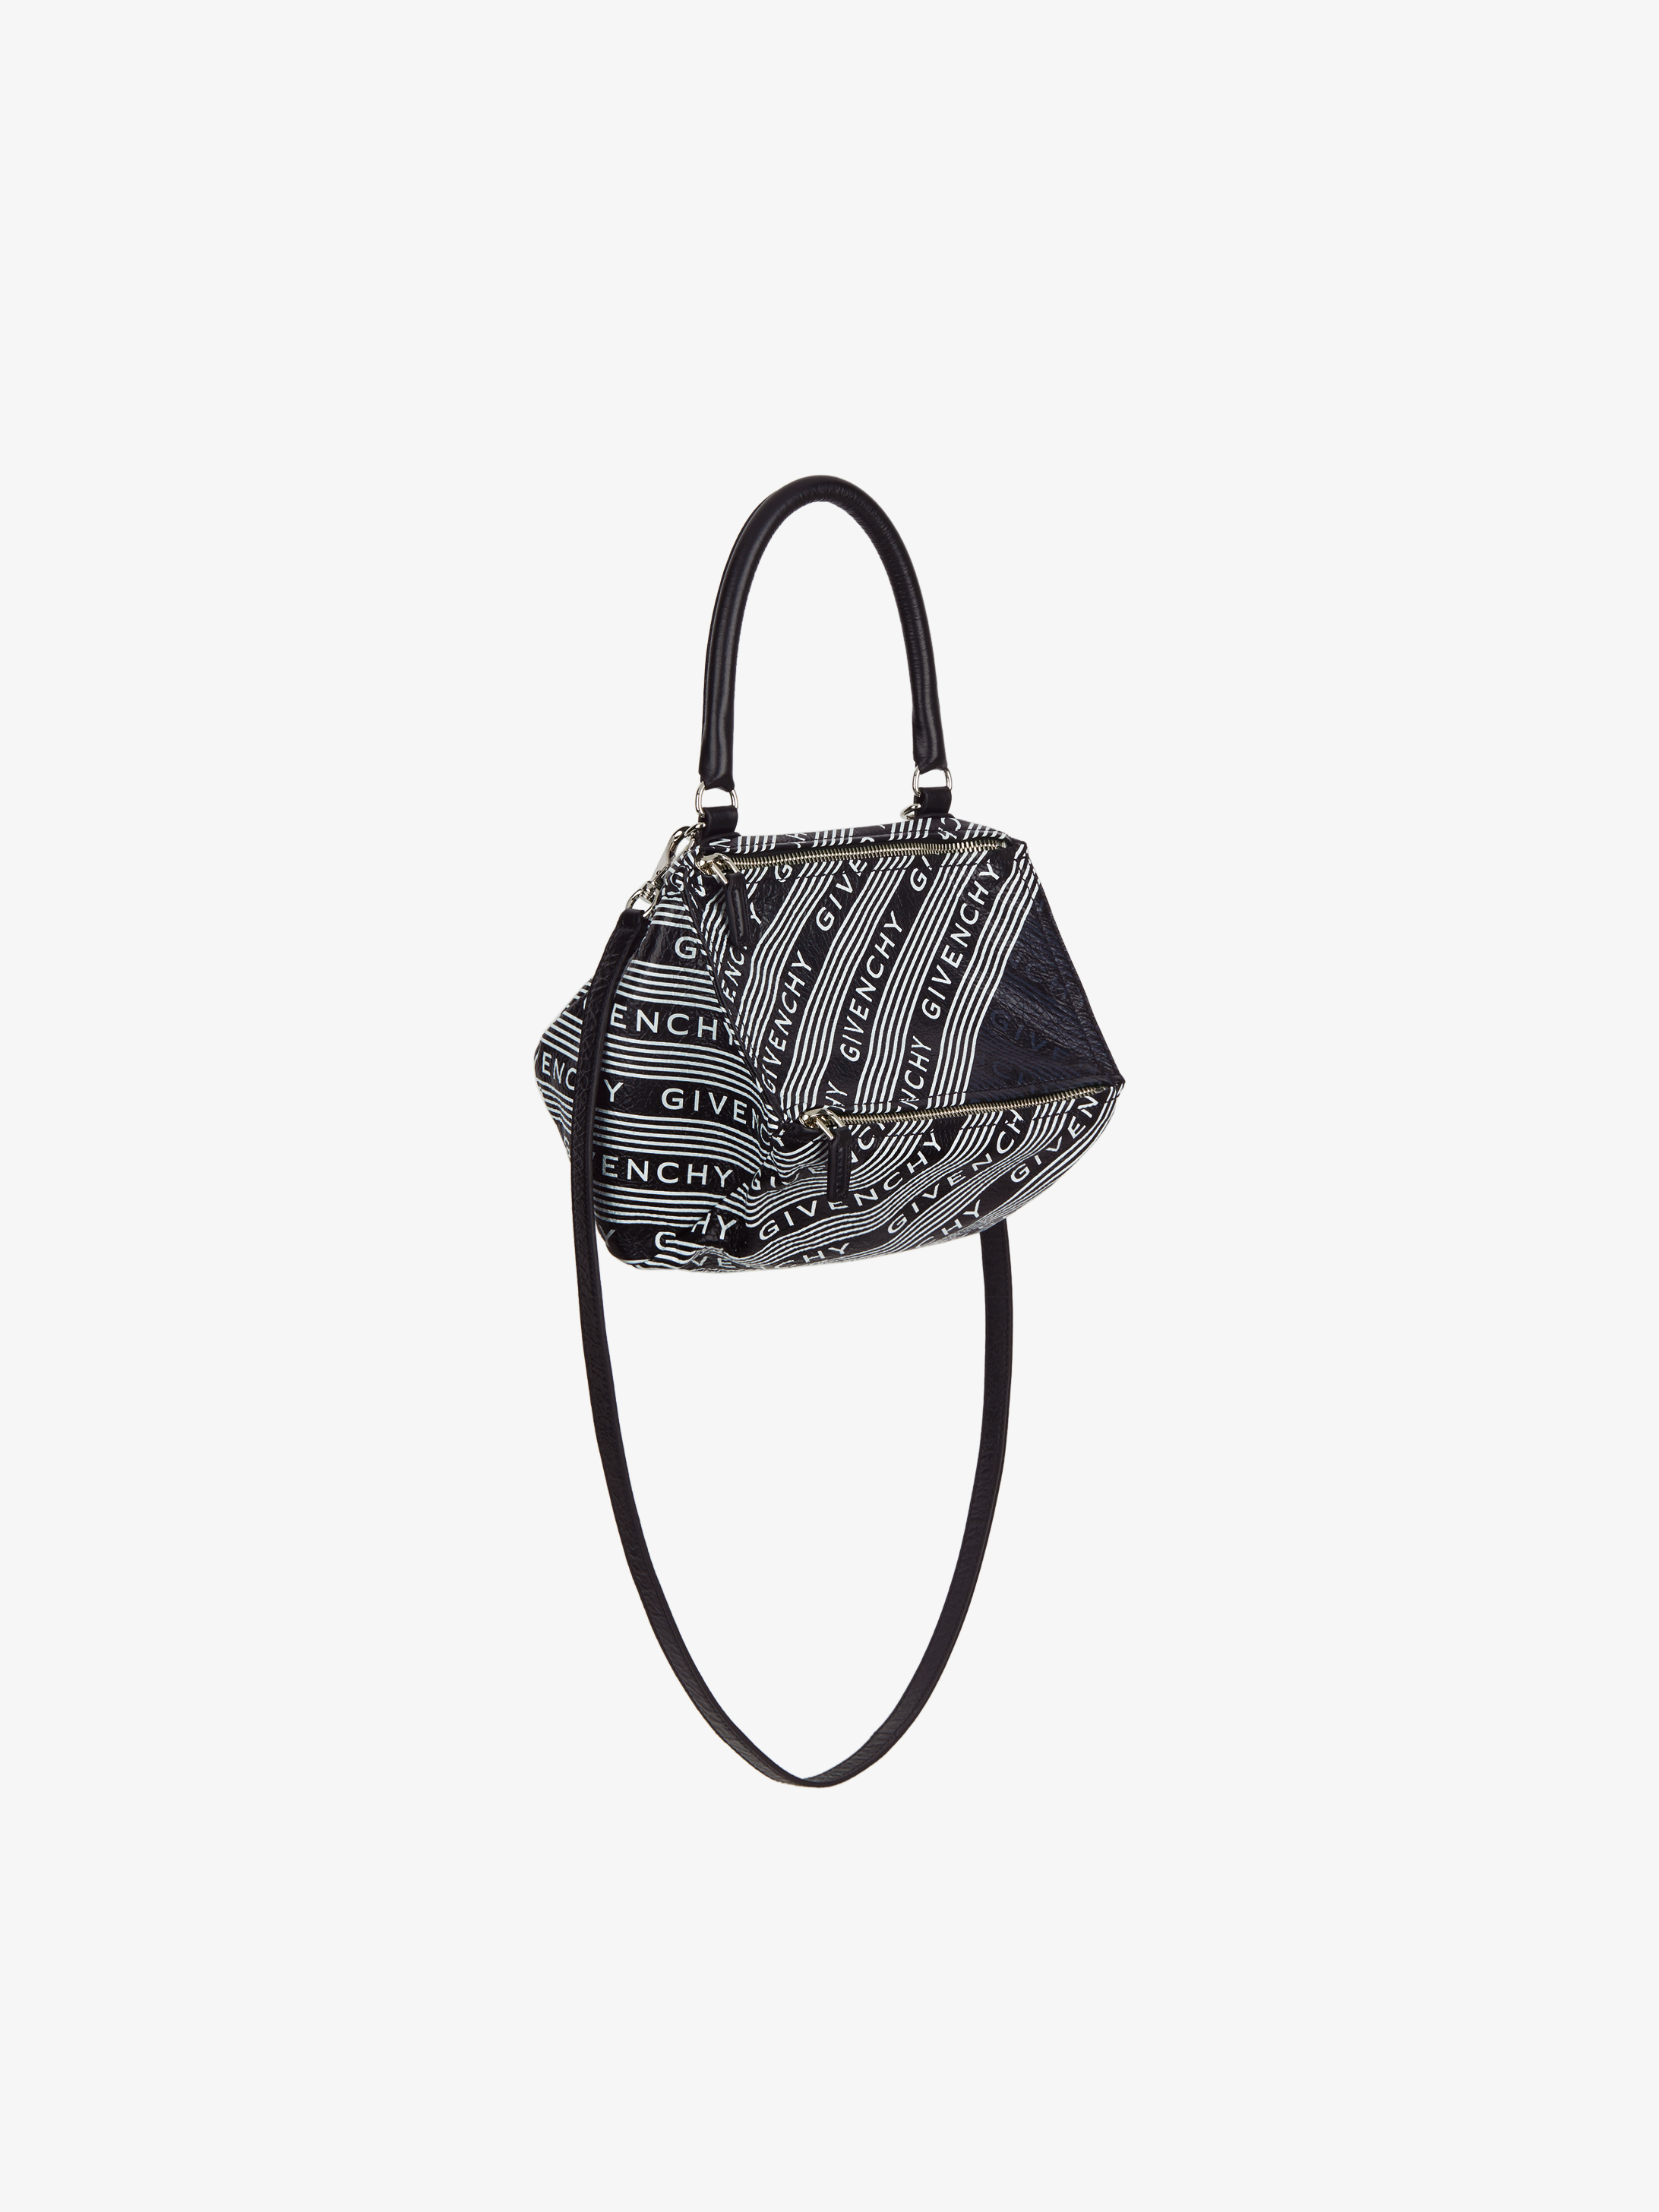 GIVENCHY small Pandora bag in striped leather